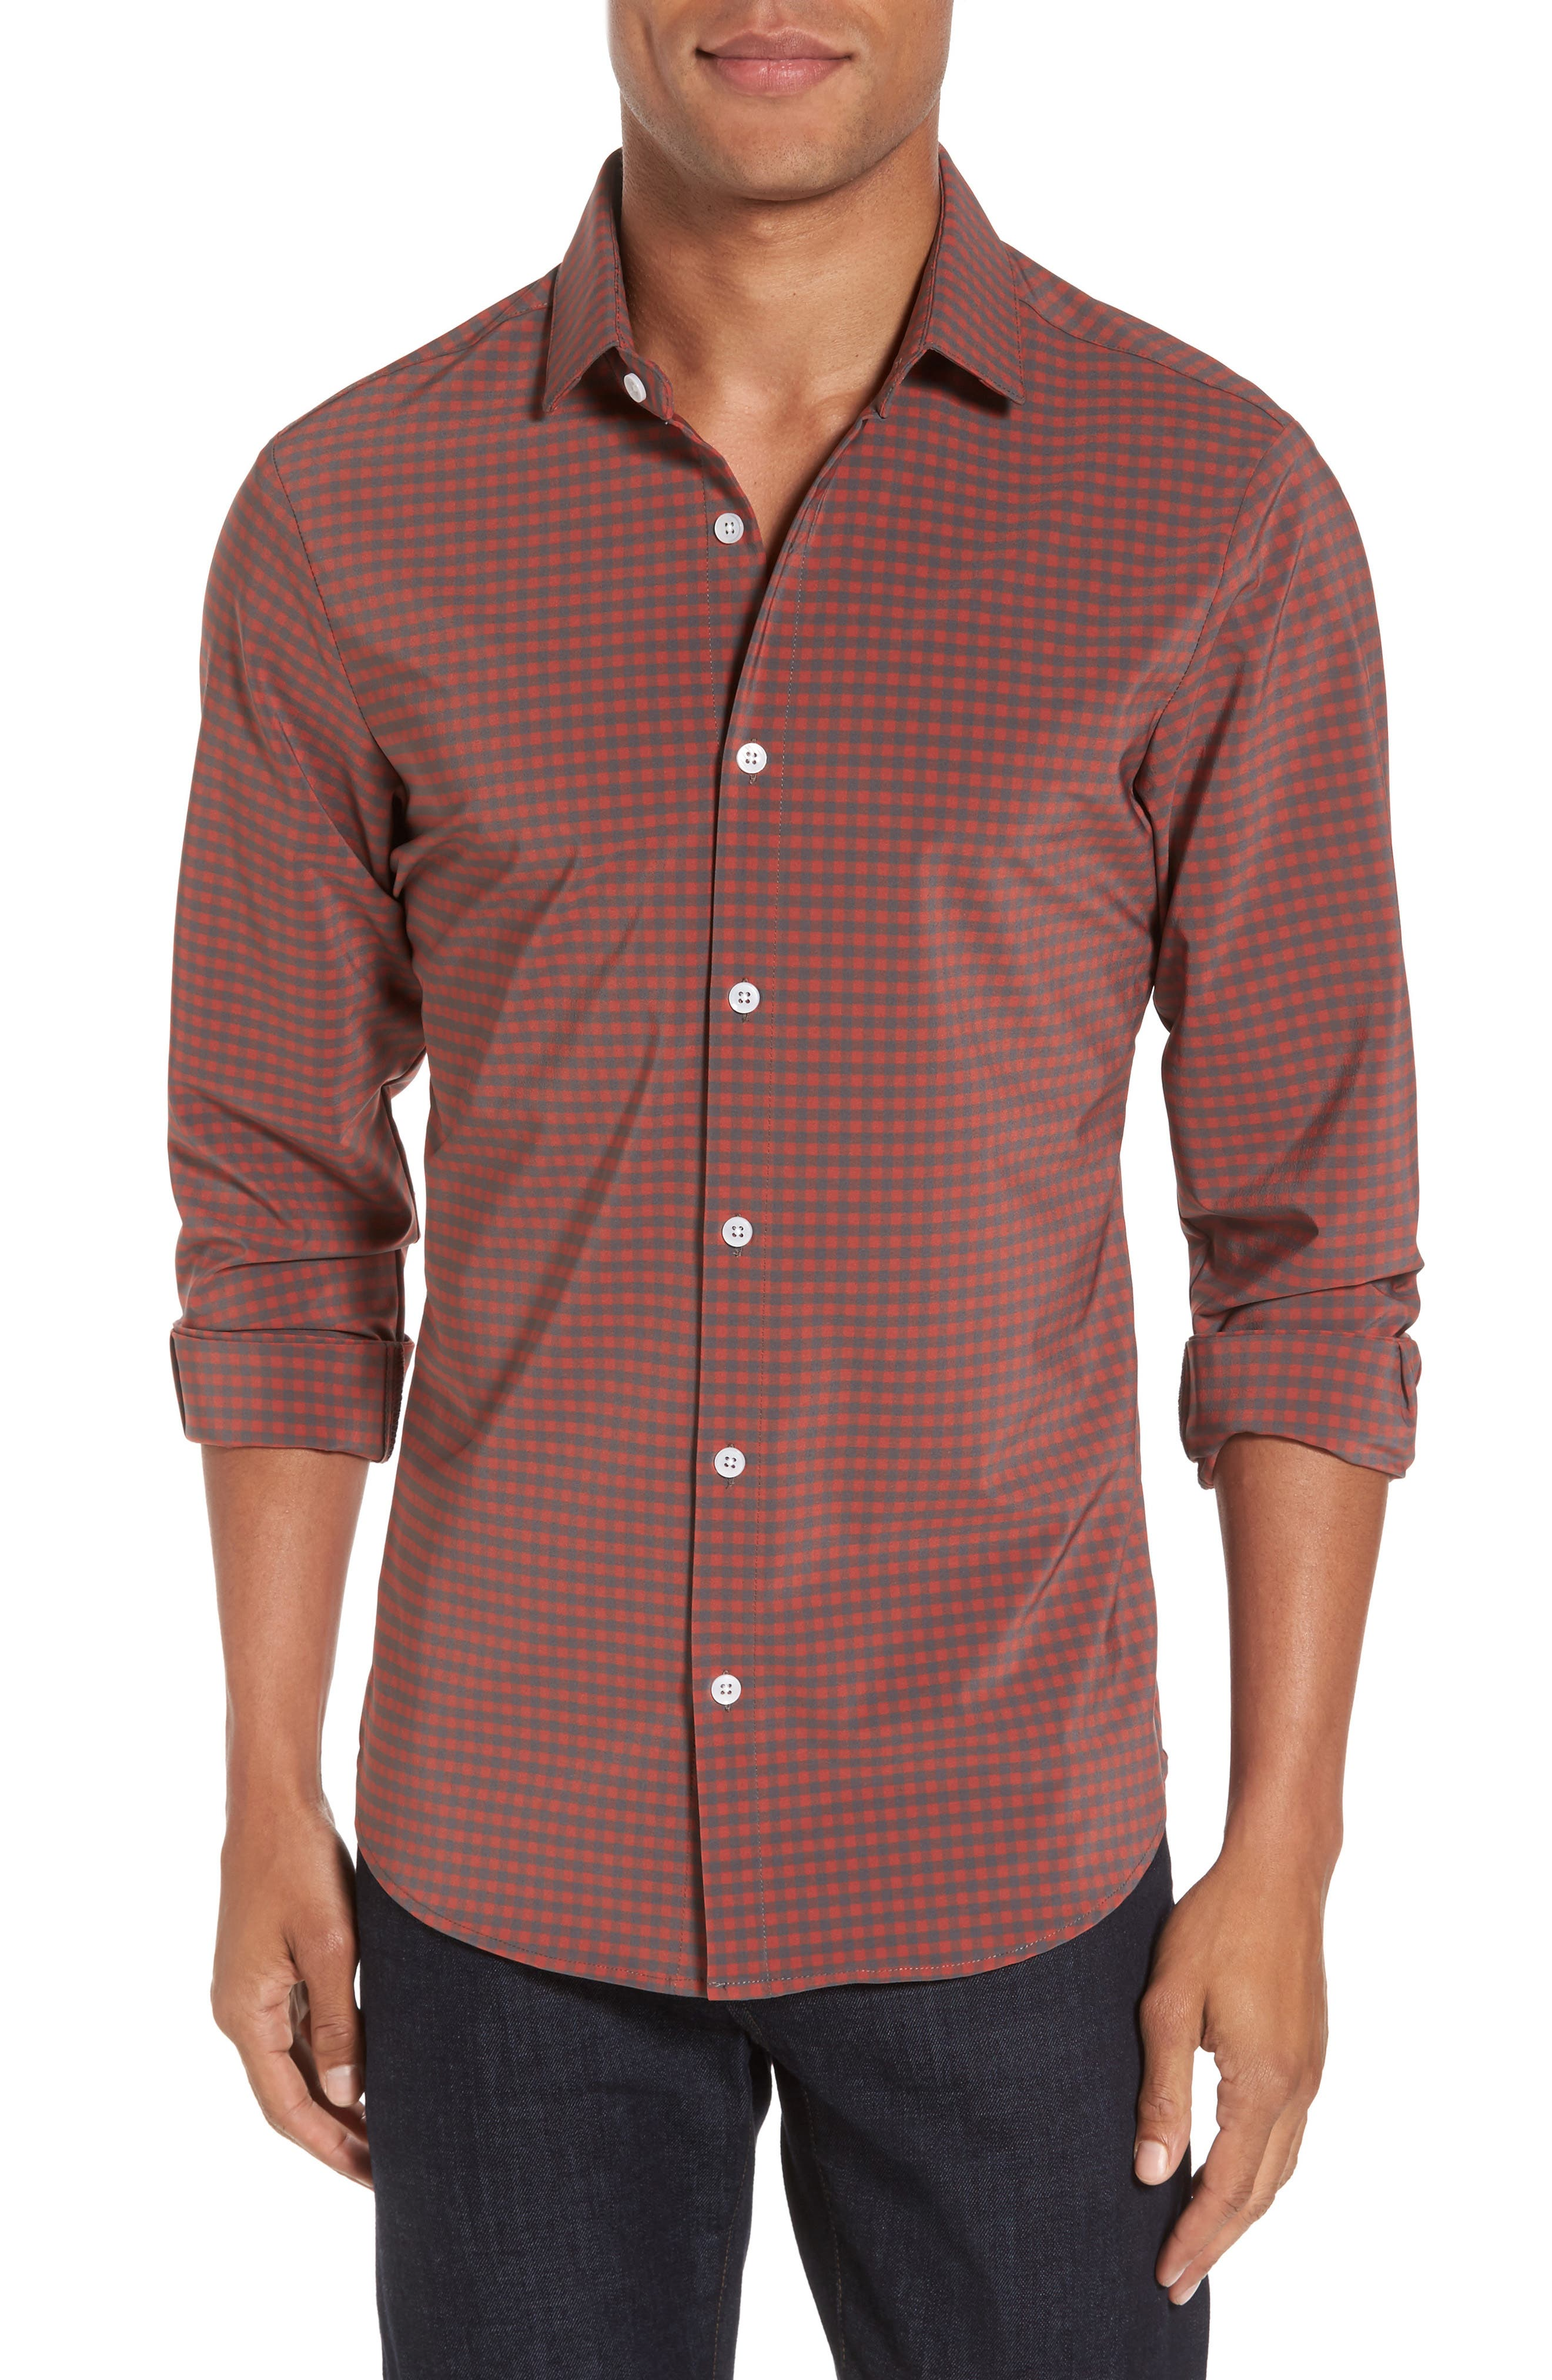 Douglas Grey & Chili Check Sport Shirt,                             Main thumbnail 1, color,                             RED